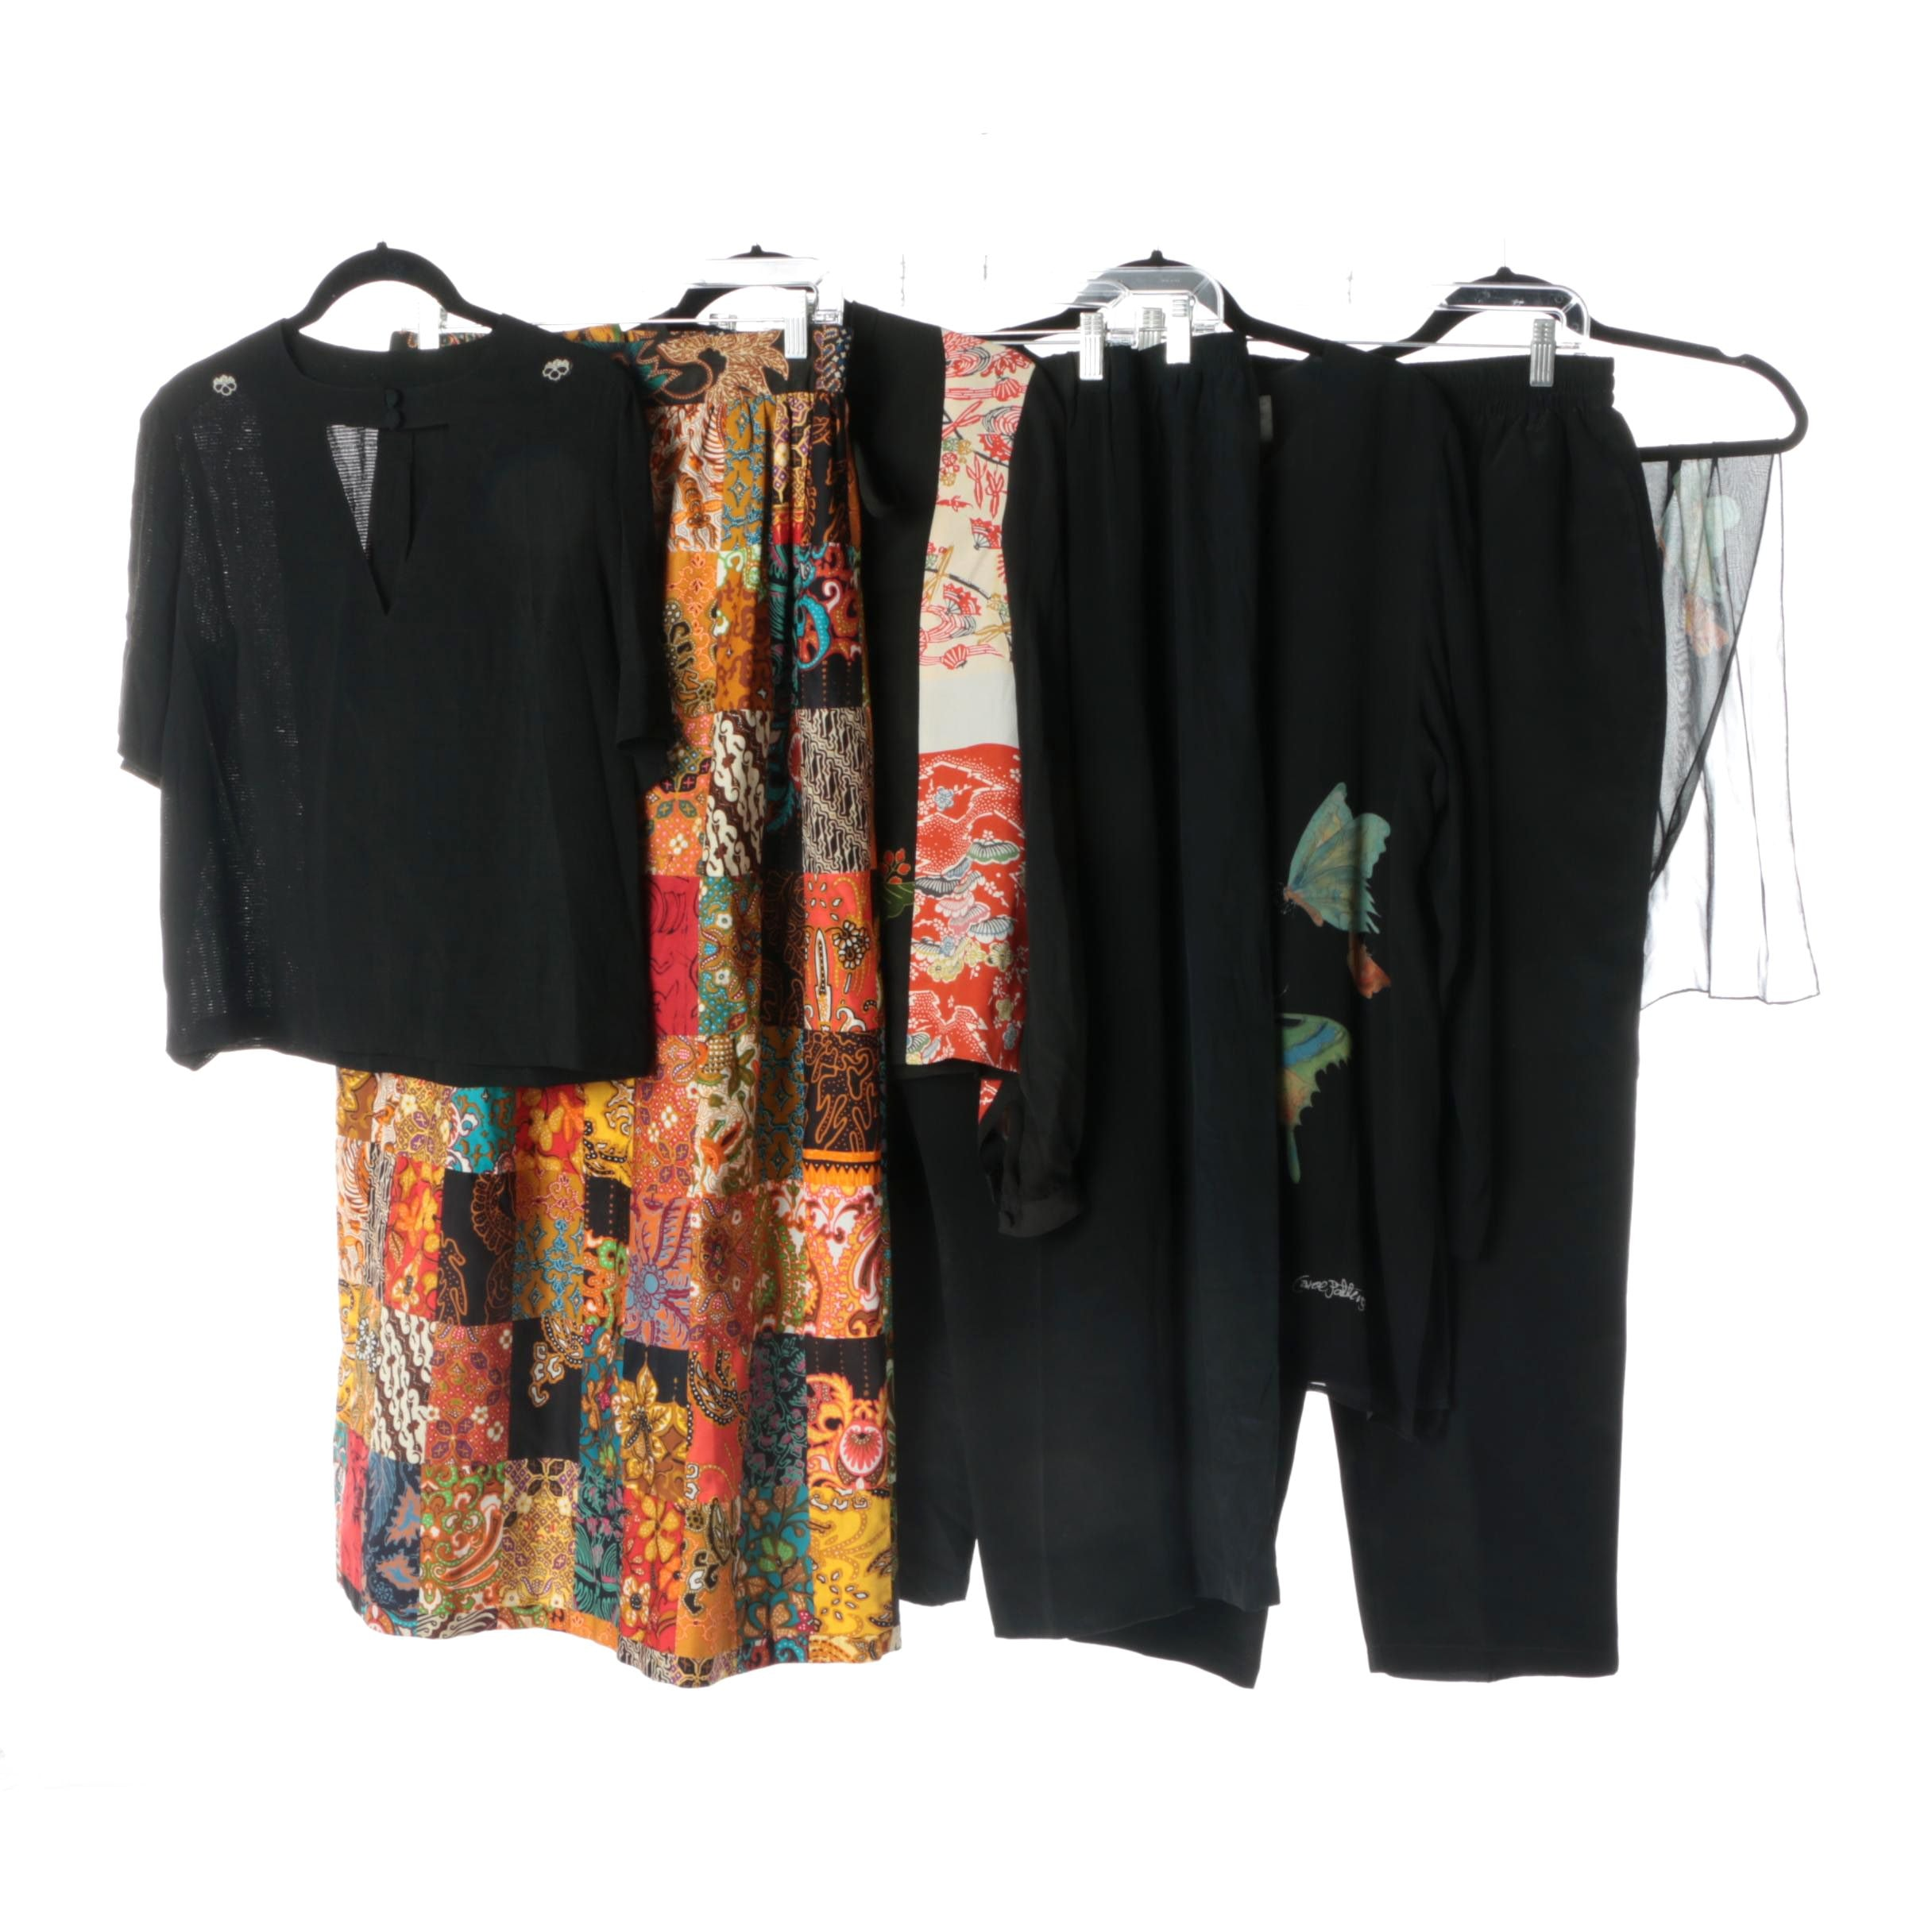 Women's Vintage Silk Separates Including Carol Patterson and Tomoyo